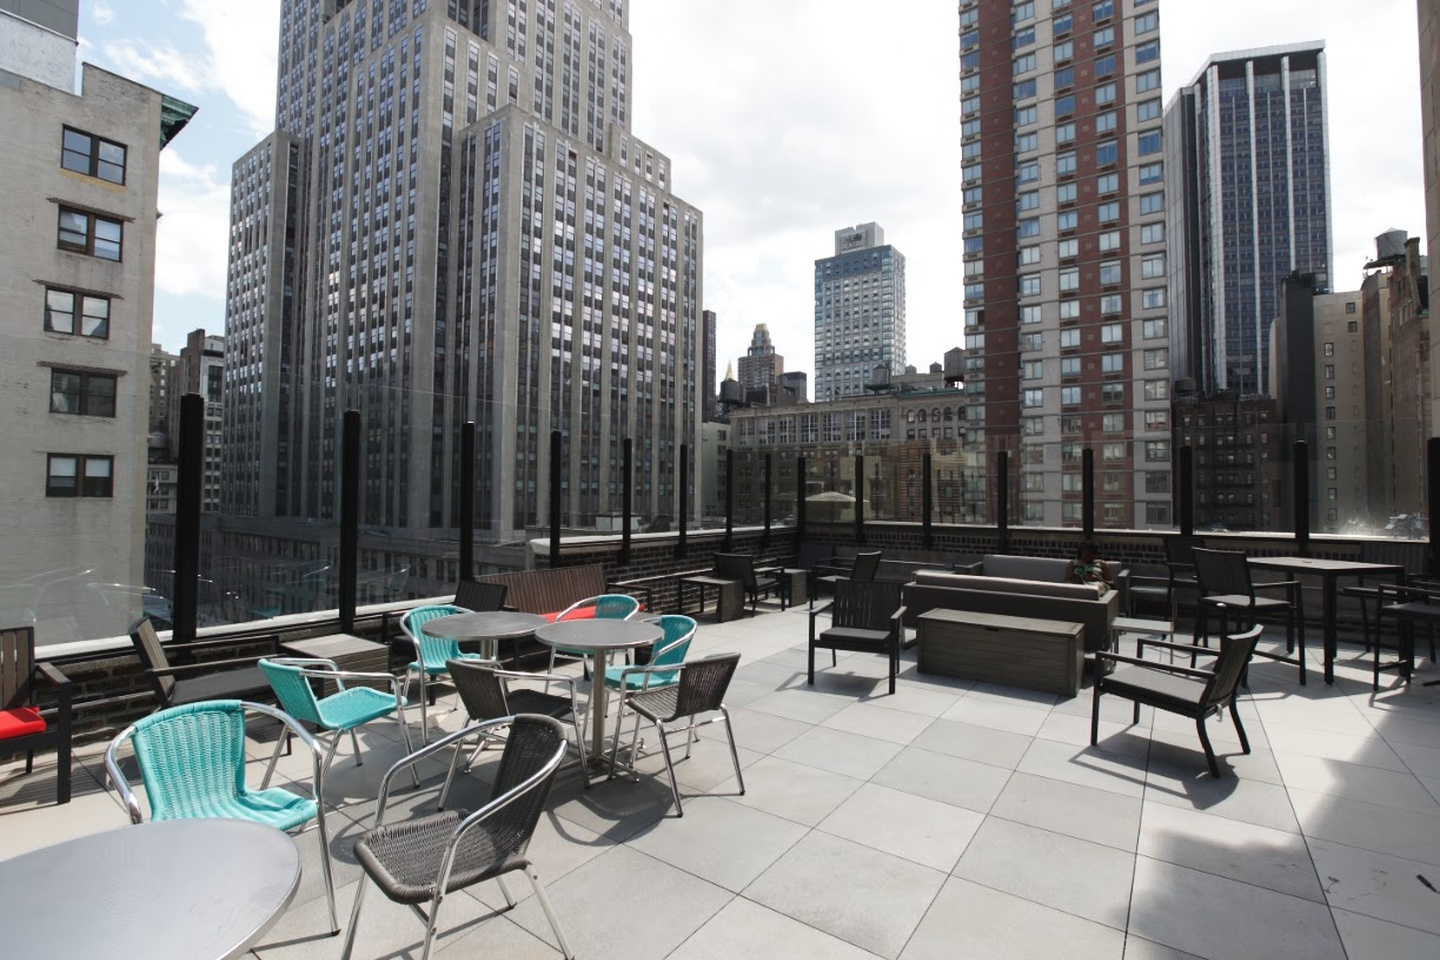 NYC corporate event venues Rooftop Jay Suites  34th Street - Rooftop terrace image 2